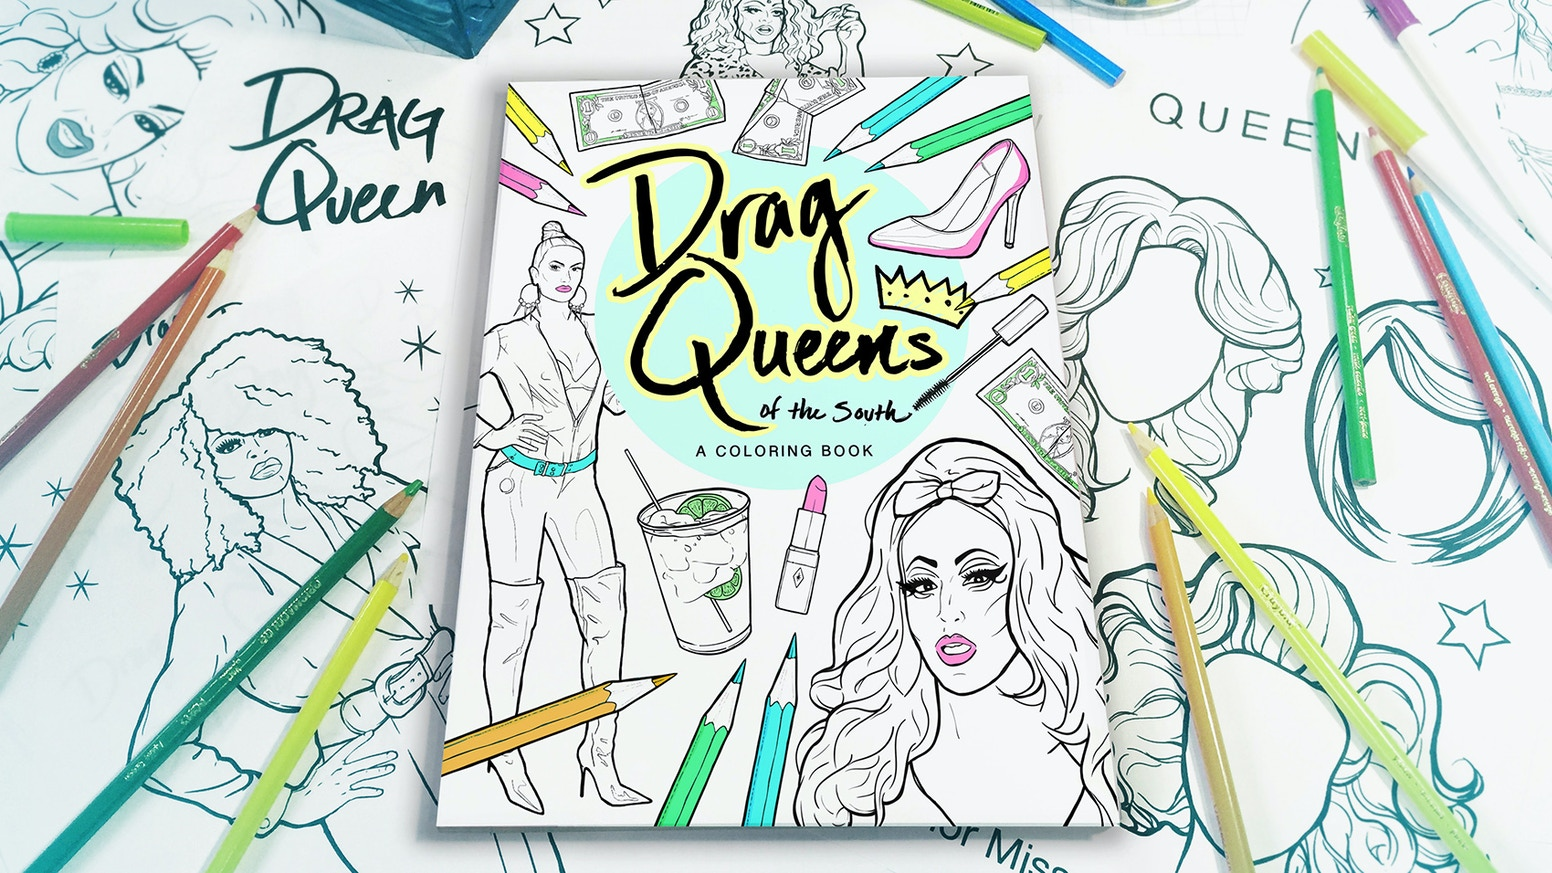 South korea coloring book - Make 100 Drag Queens Of The South A Coloring Book